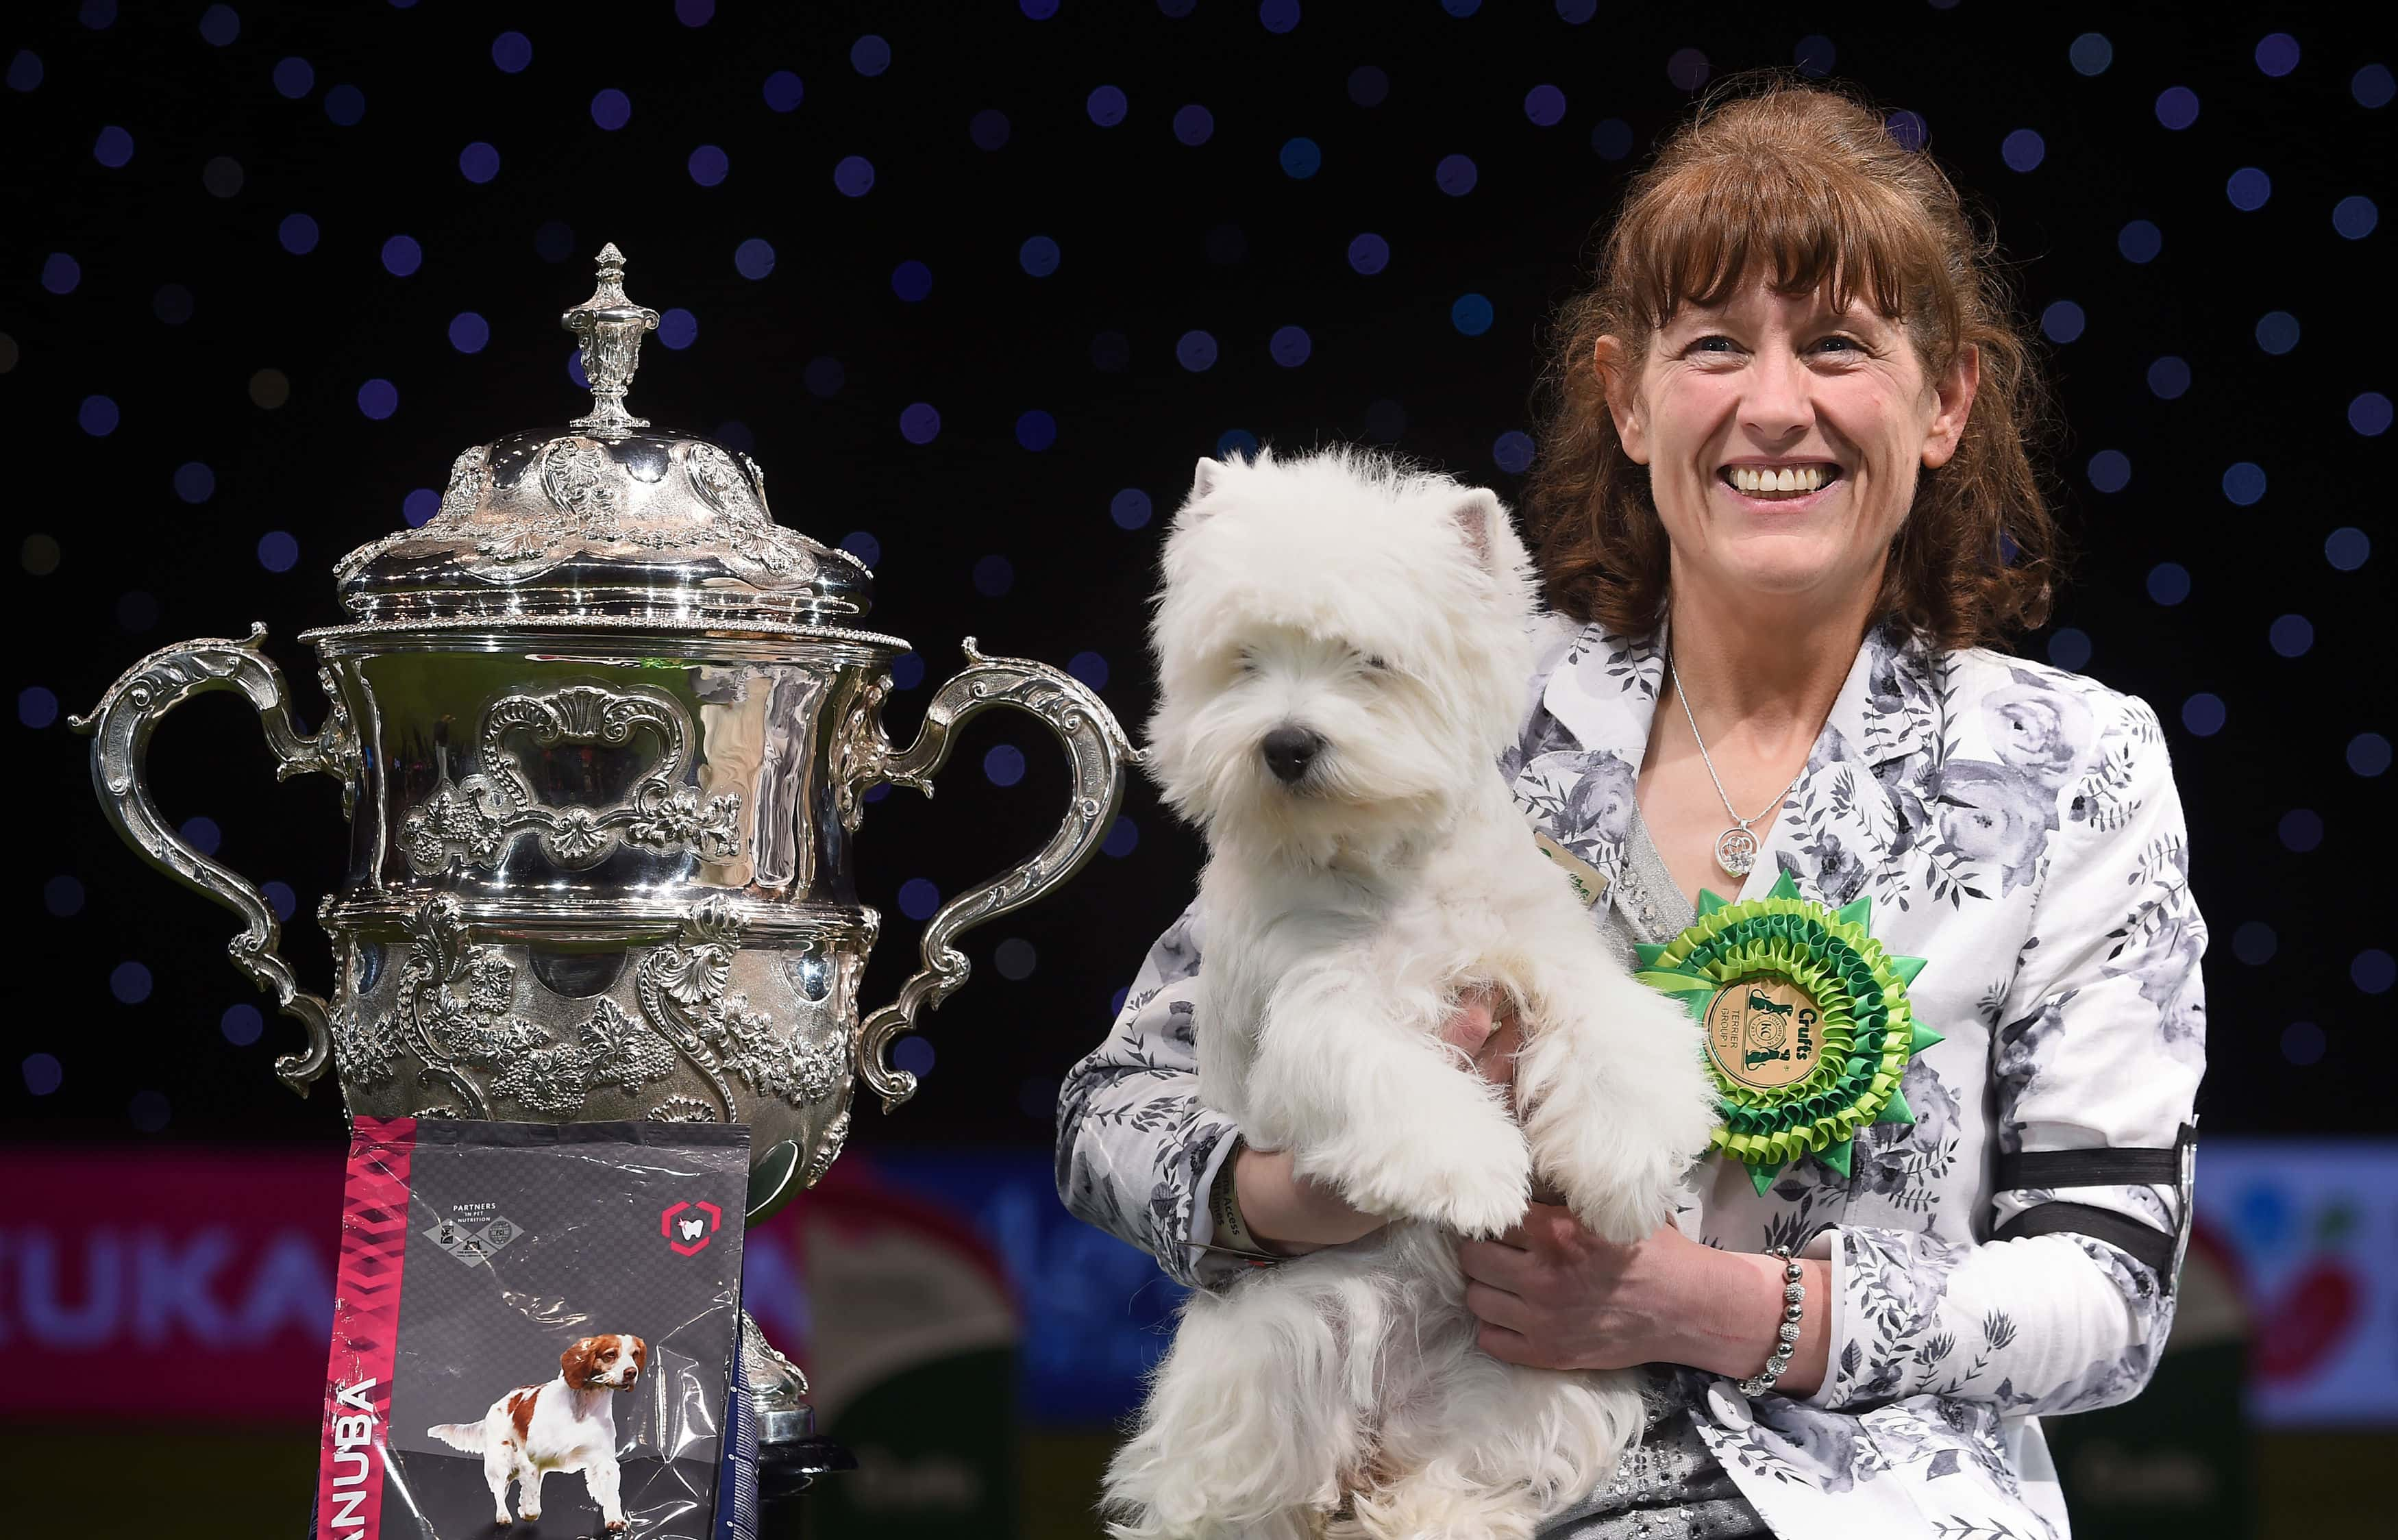 Devon the West Highland Terrier who has been named Best in Show at Crufts 2016 at the NEC, Birmingham.